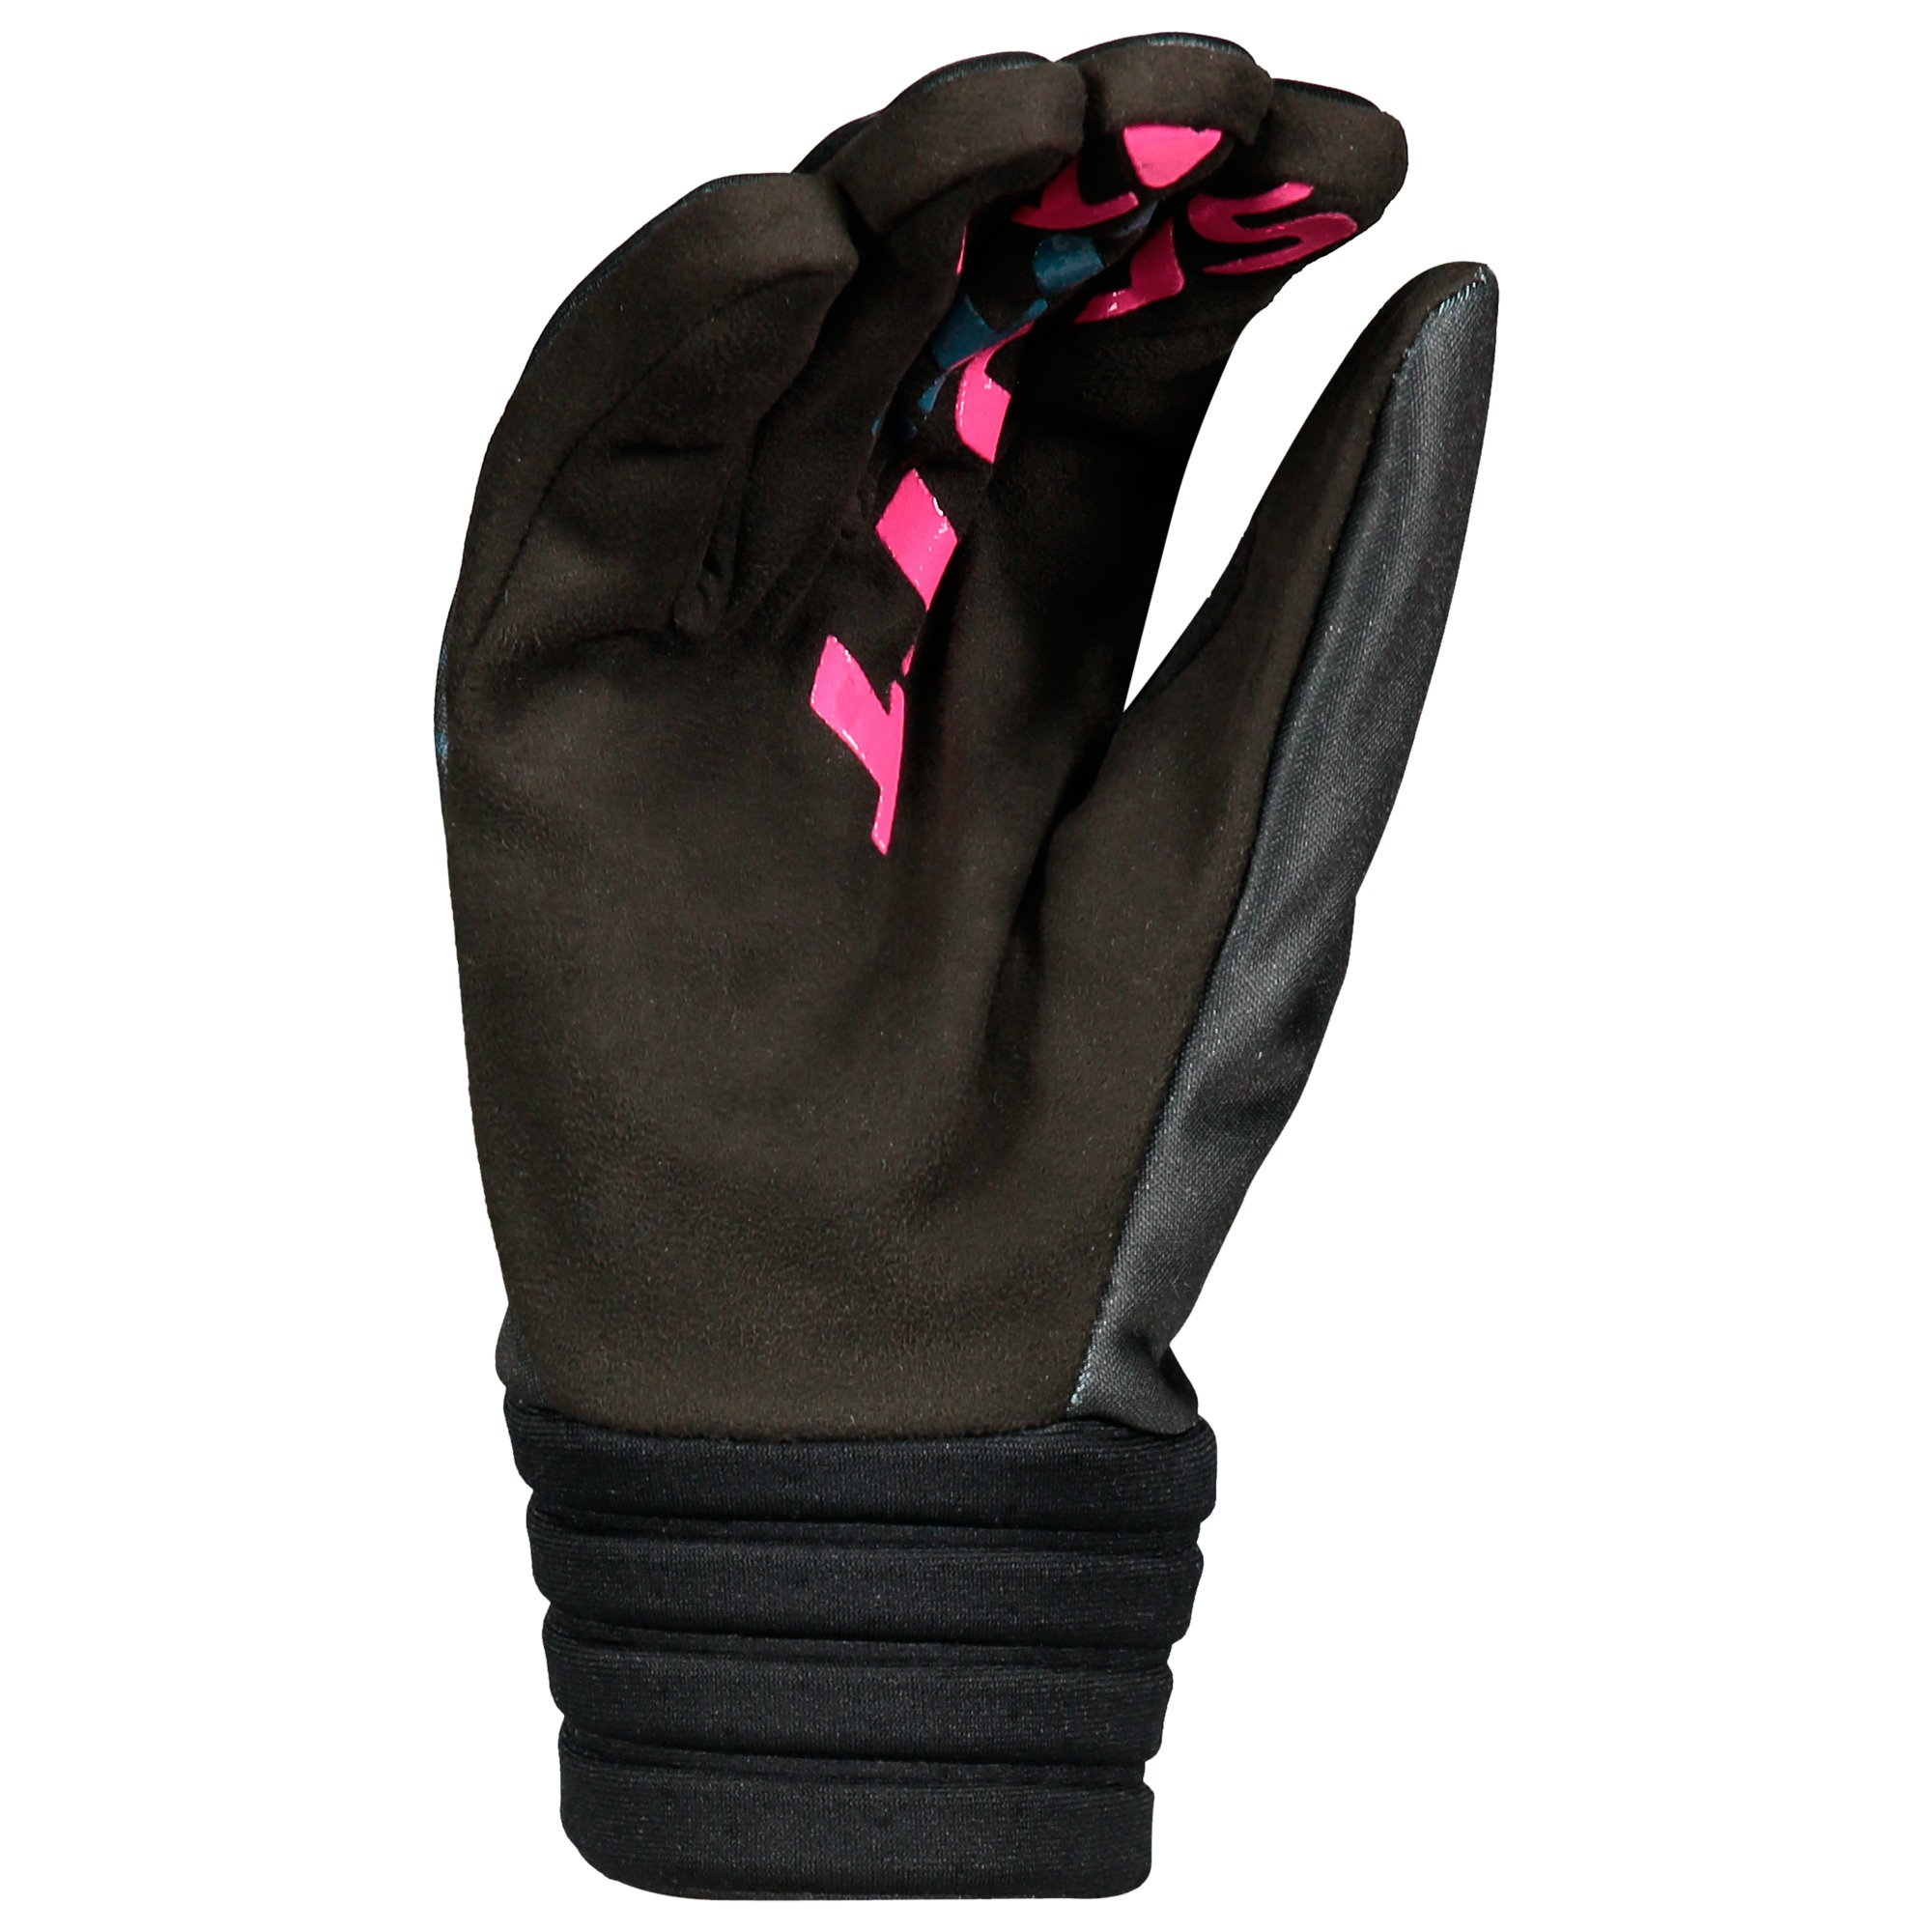 SCOTT 350 Insulated Glove